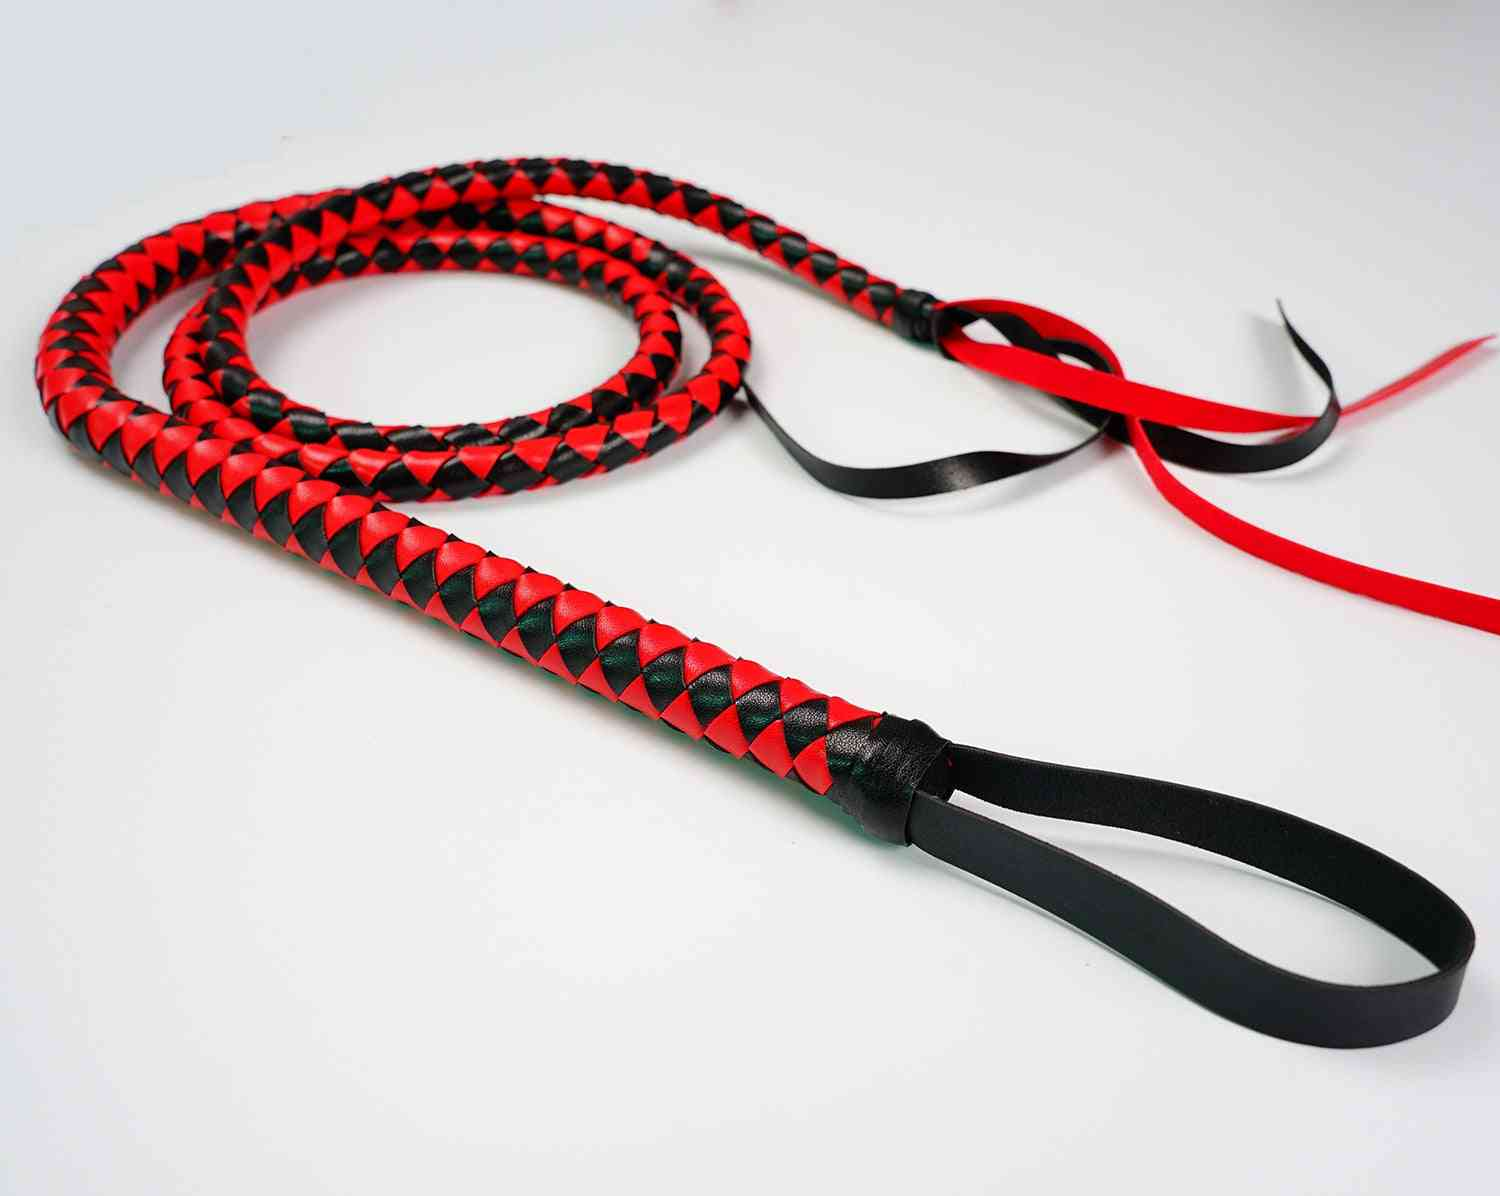 Leather Whip Horse Racing Whip Chicot Queen Party Riding Crops Entertainment Ride